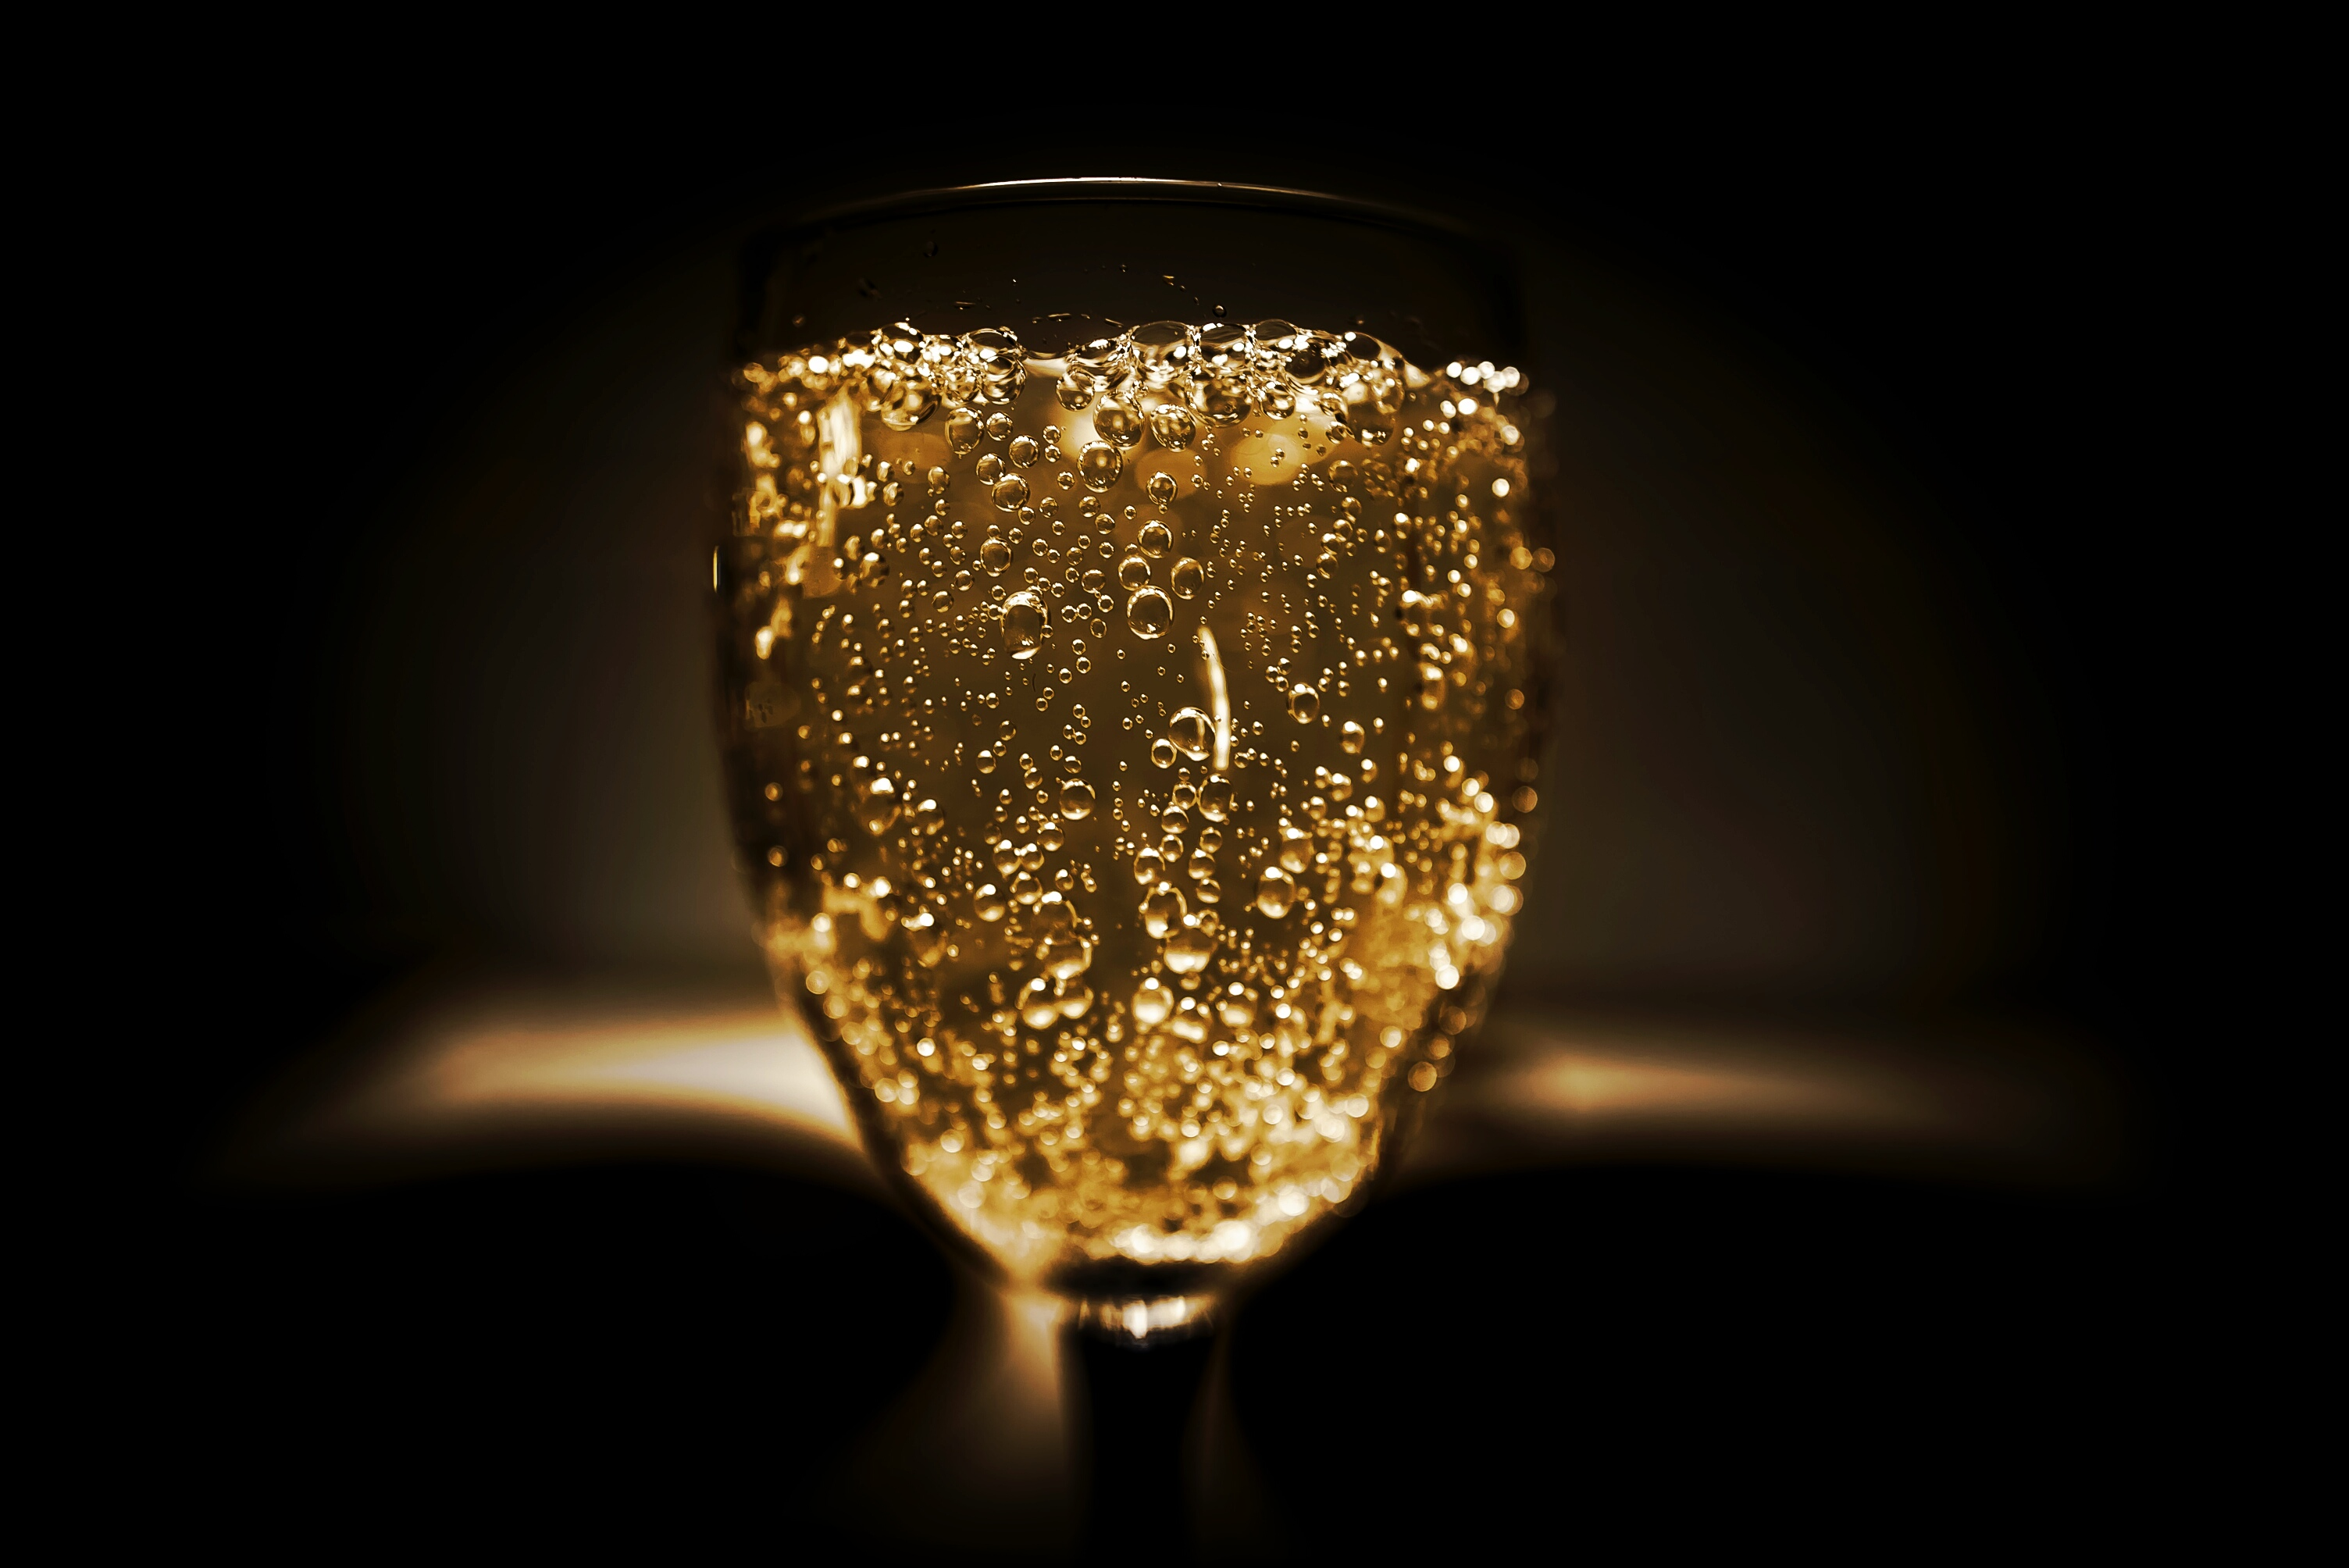 Champagne on Glass